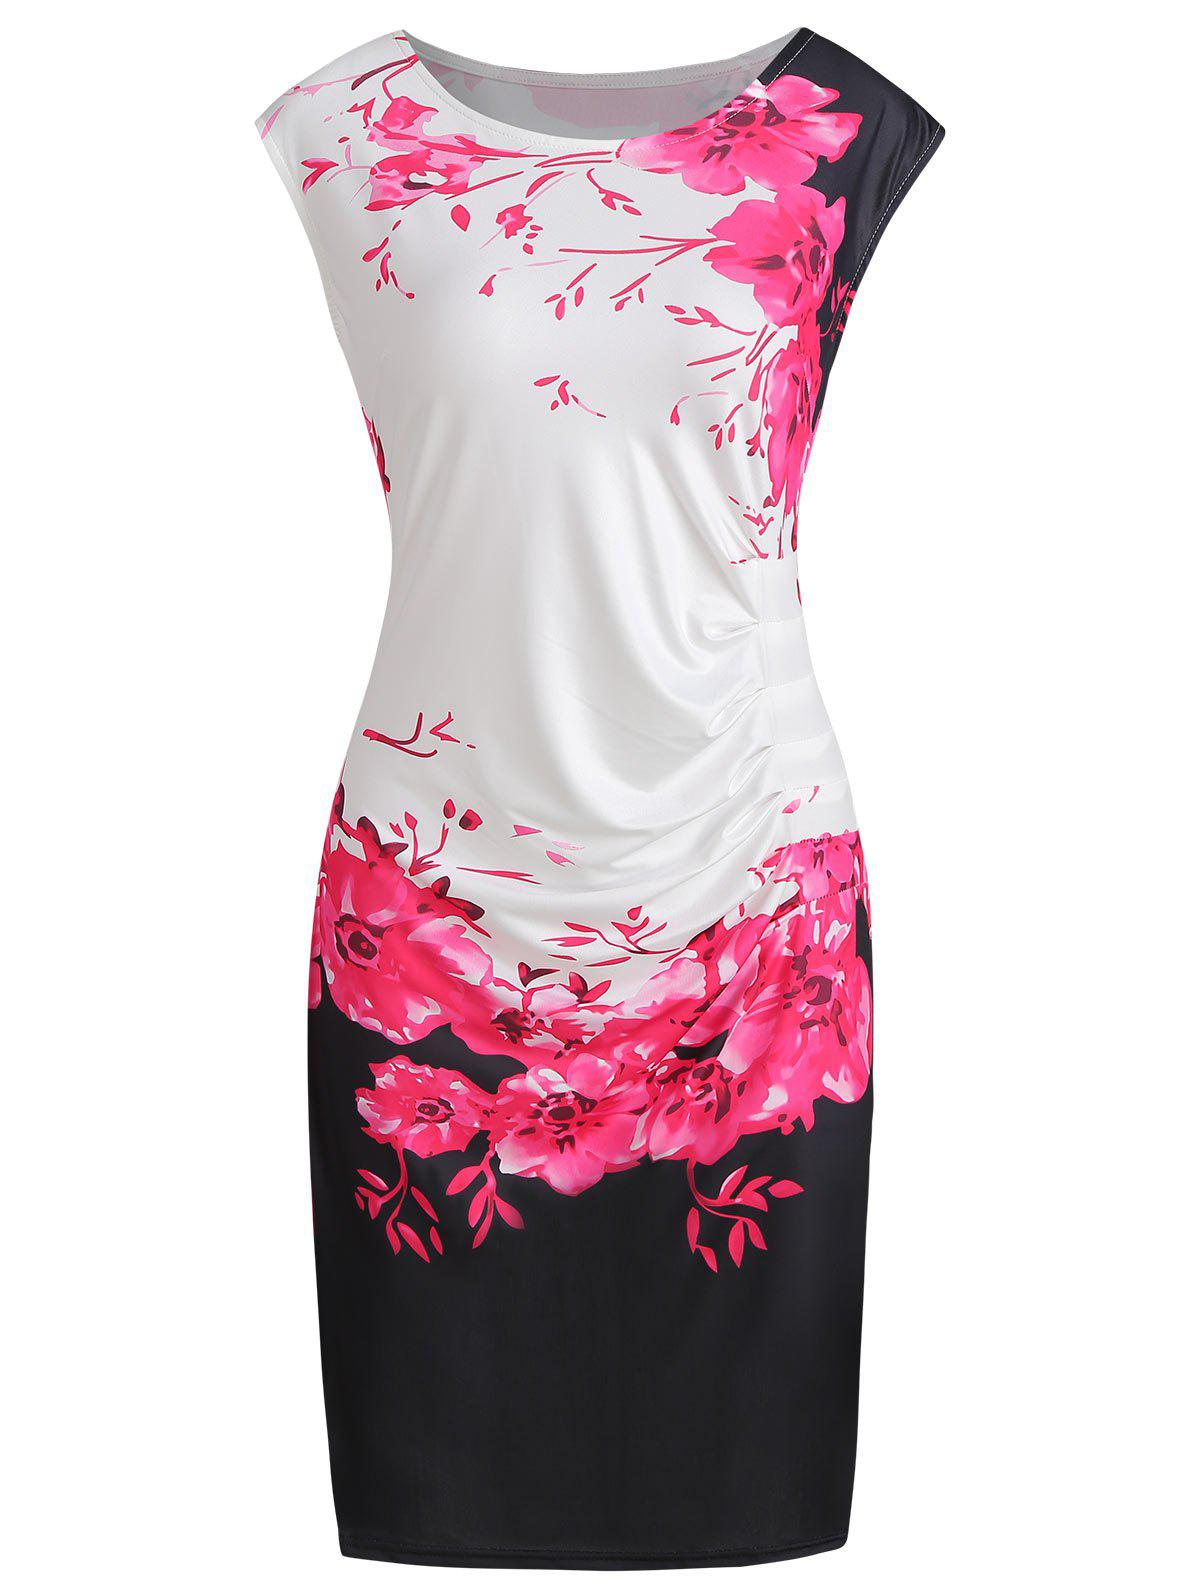 Shop Plus Size Bodycon Floral Print Dress